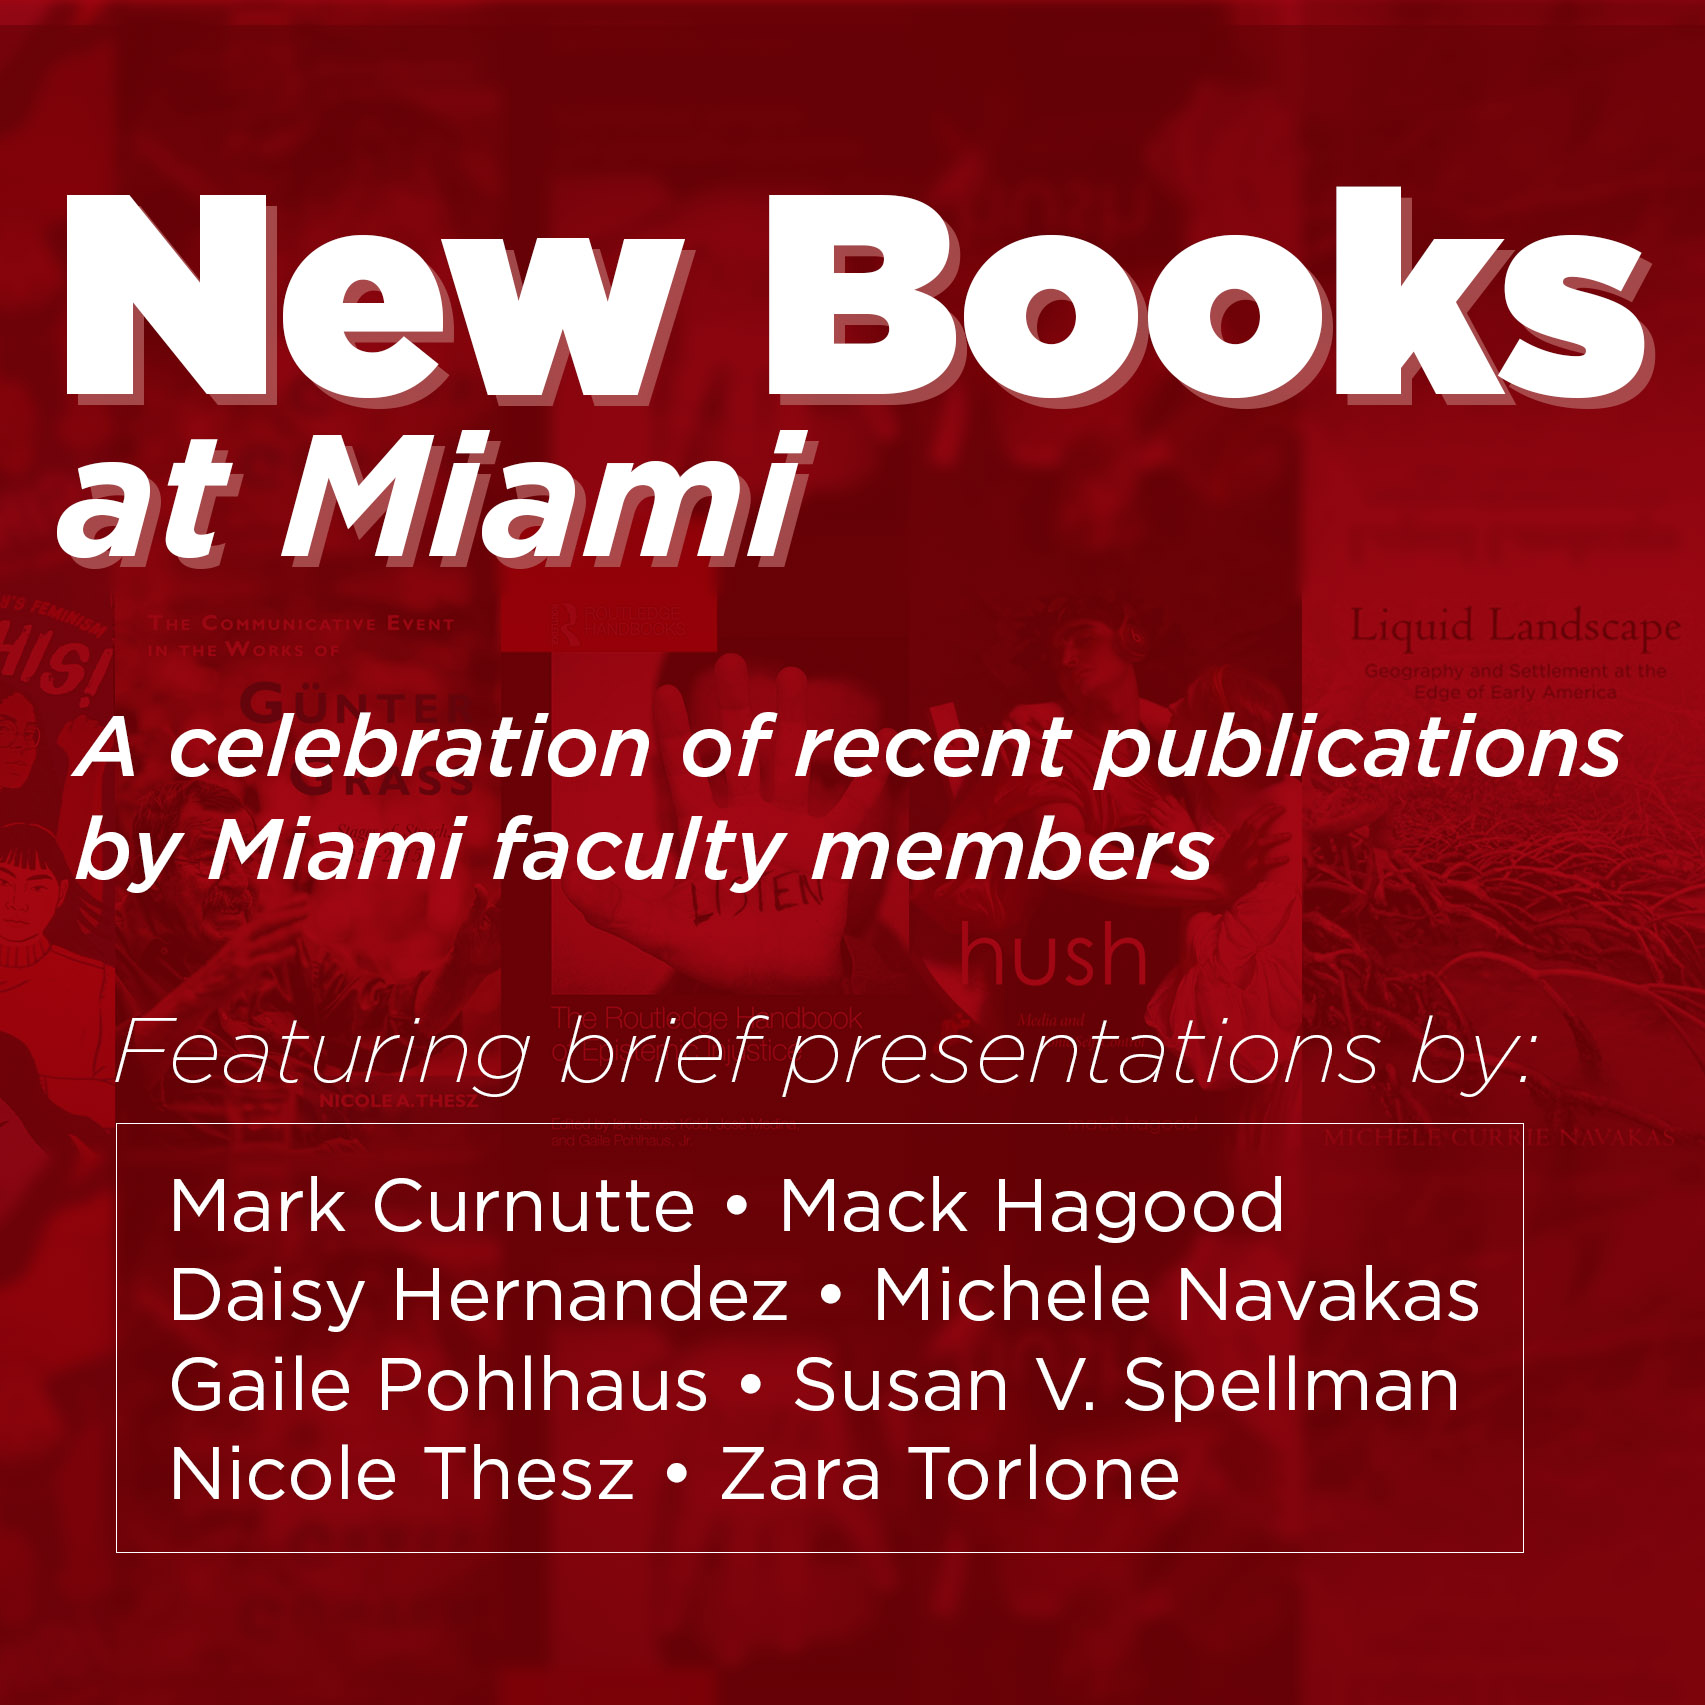 New Books at Miami, a celebration of recent publications by Miami faculty